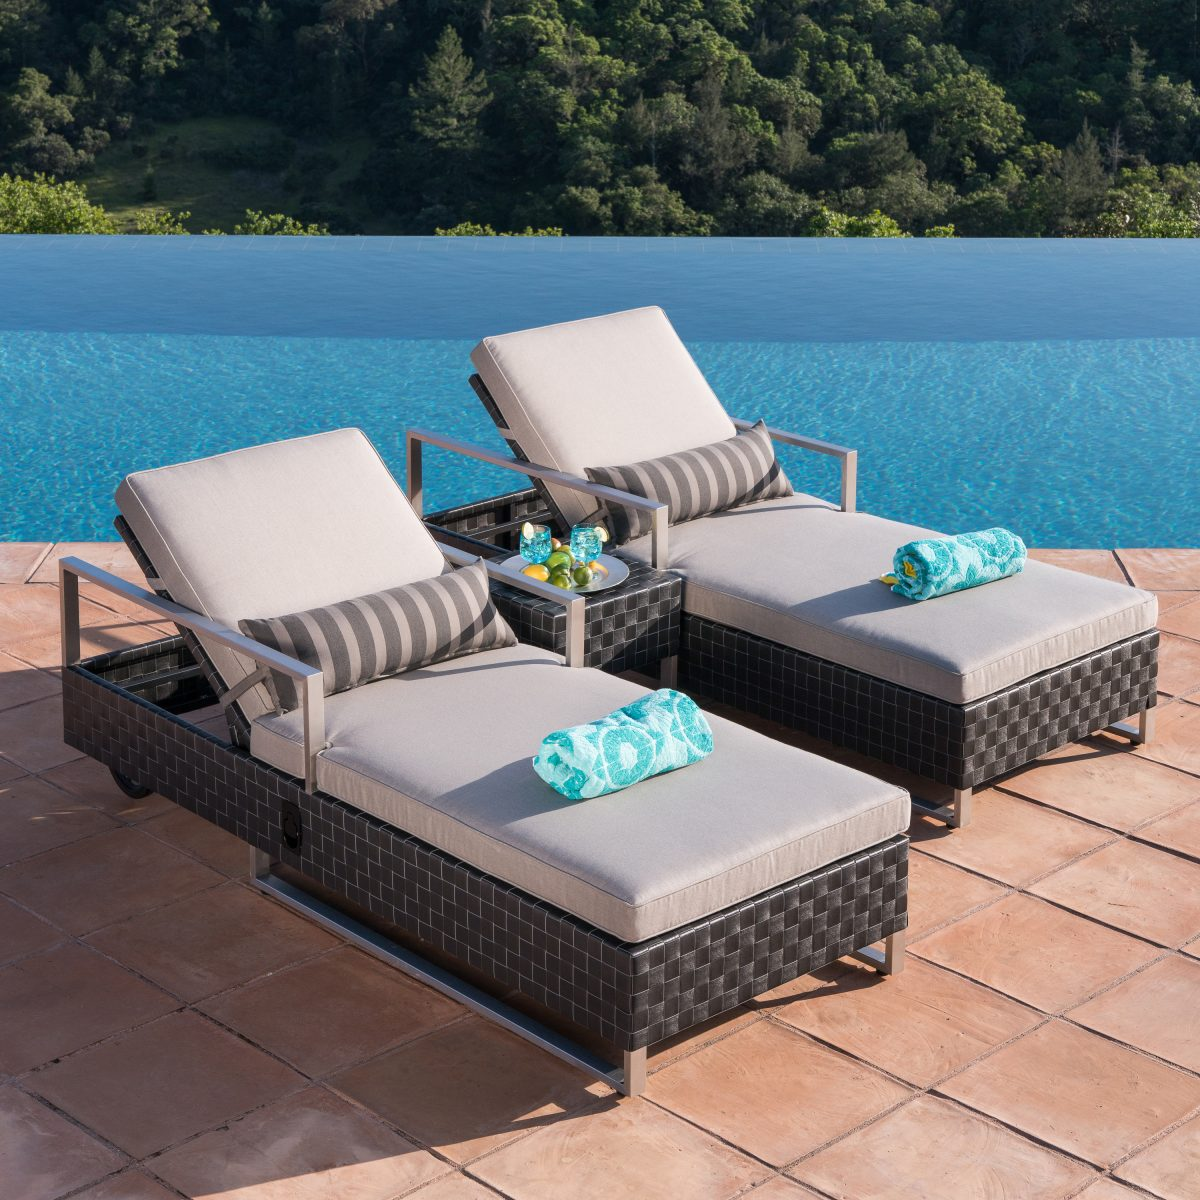 patio furniture for small spaces - chaise lounge set